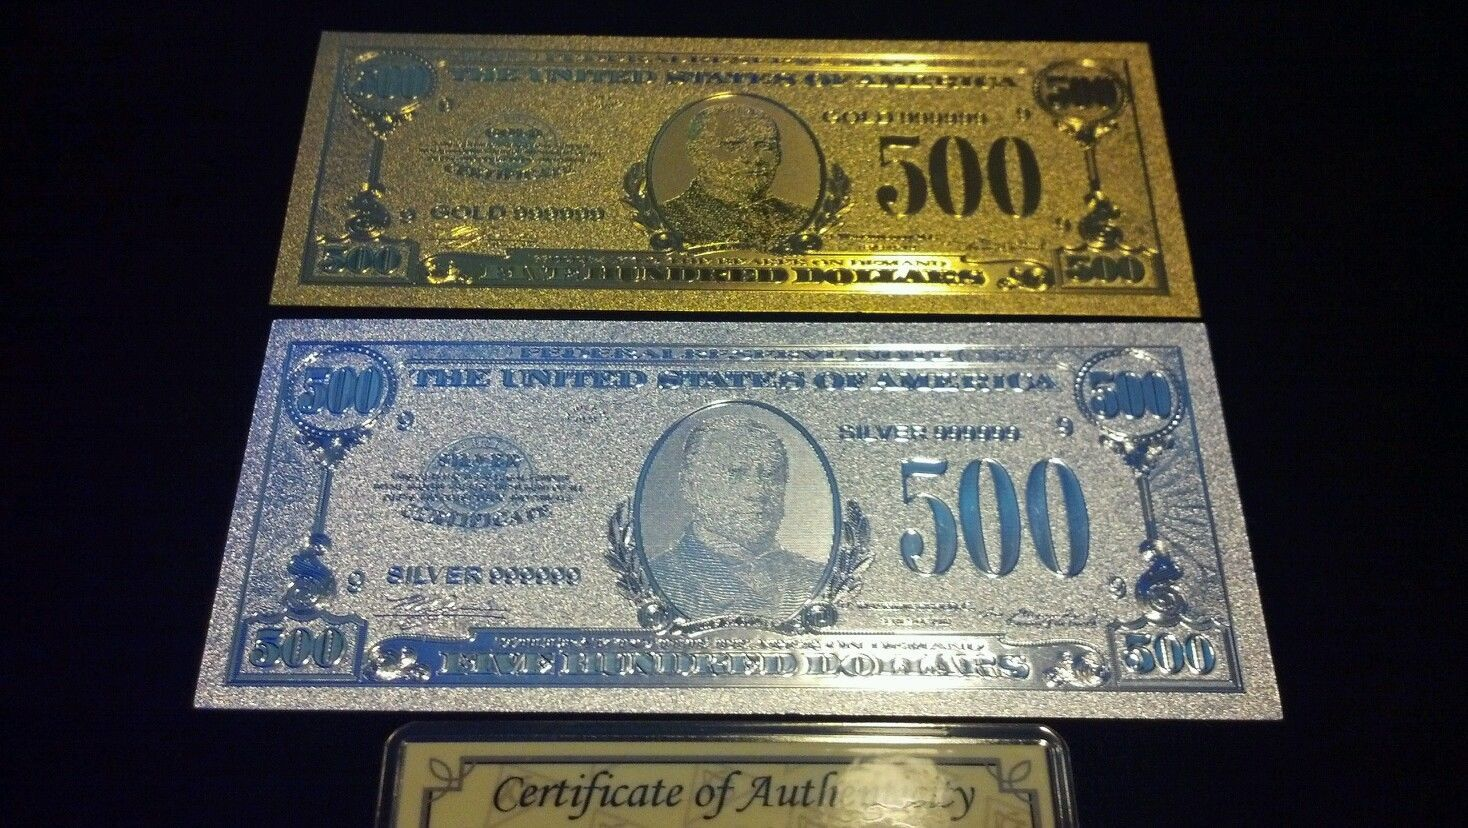 5 Pc.LOT~2 U.S $500 BANKNOTE REPS.*(1 GOLD& 1 SILVER+TINY SILVER BAR+COIN/FLAKEk